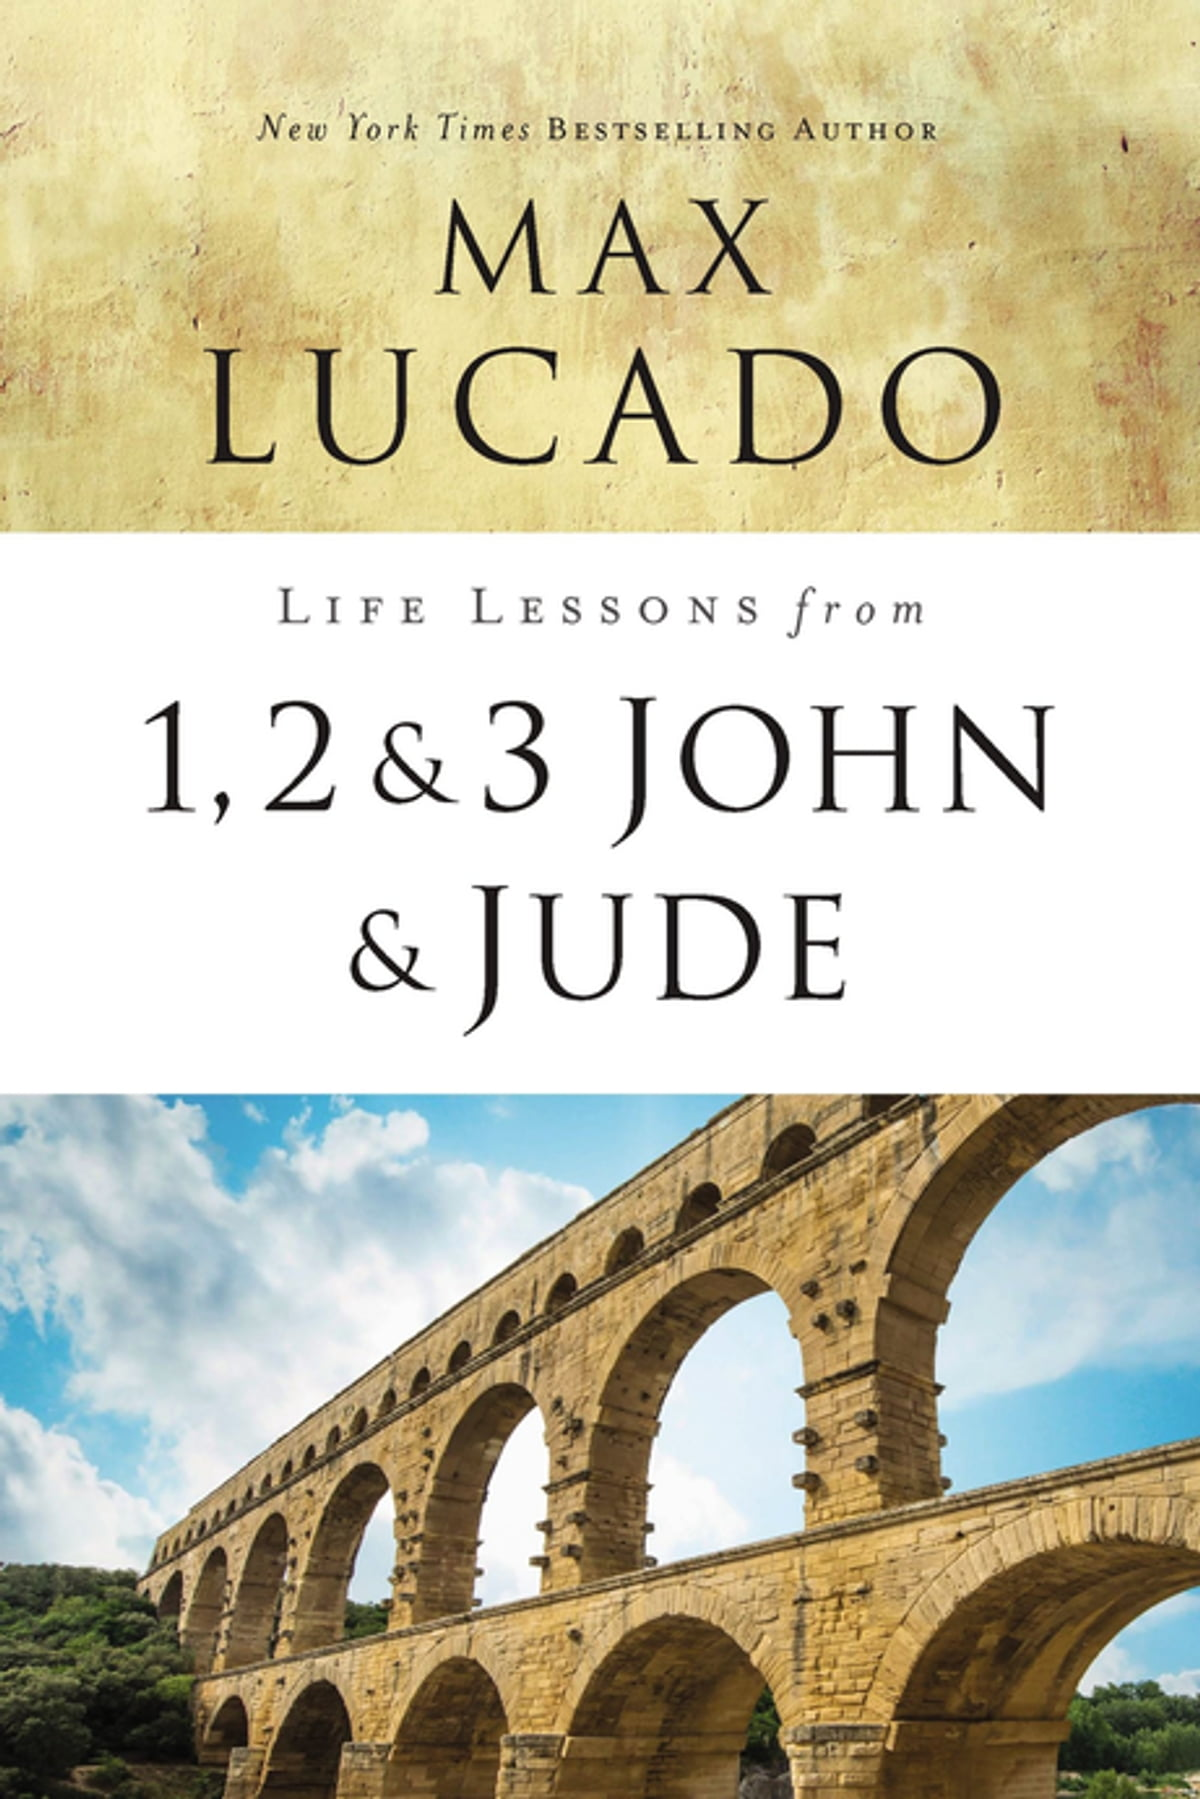 Life Lessons from 1, 2, 3 John and Jude eBook by Max Lucado - 9780310086659  | Rakuten Kobo